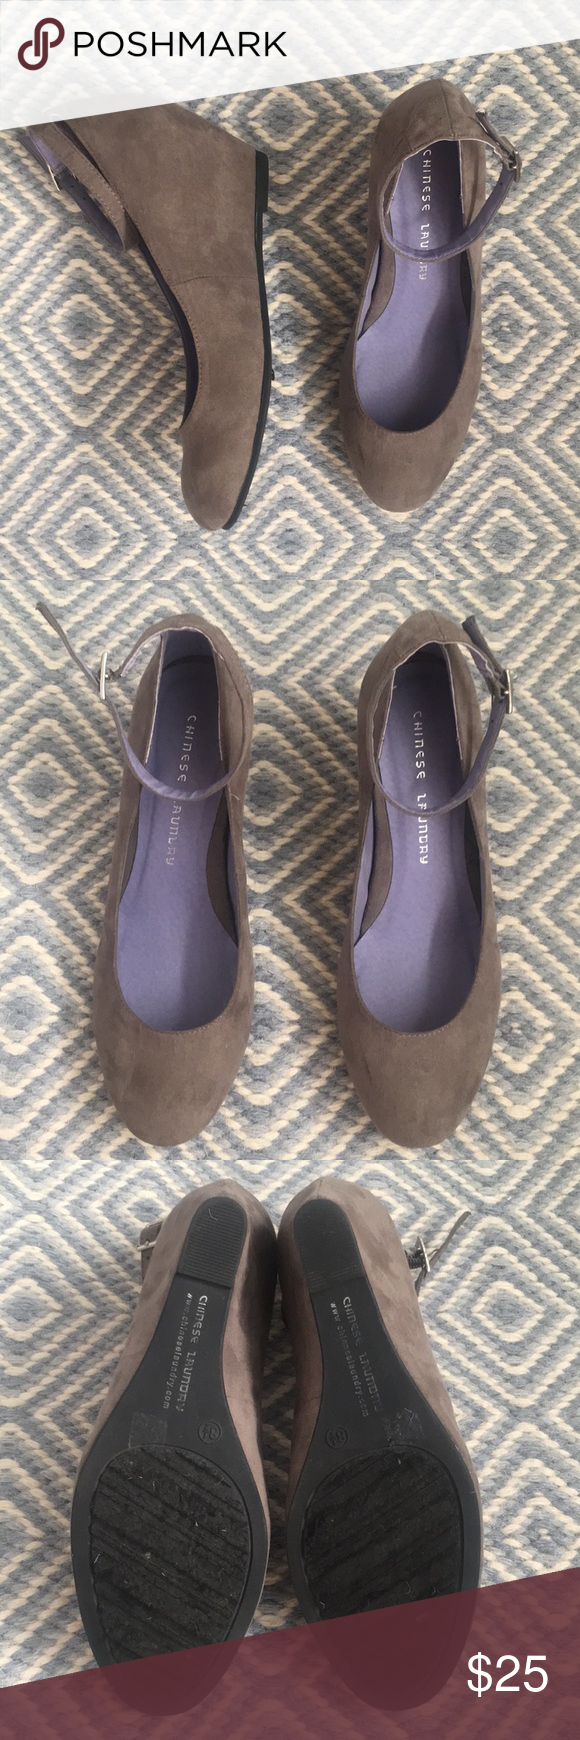 471fa3732b2 CHINESE LAUNDRY GRAY MICRO SUEDE WEDGES ▫️Great used condition. ▫️Only  signs of wear